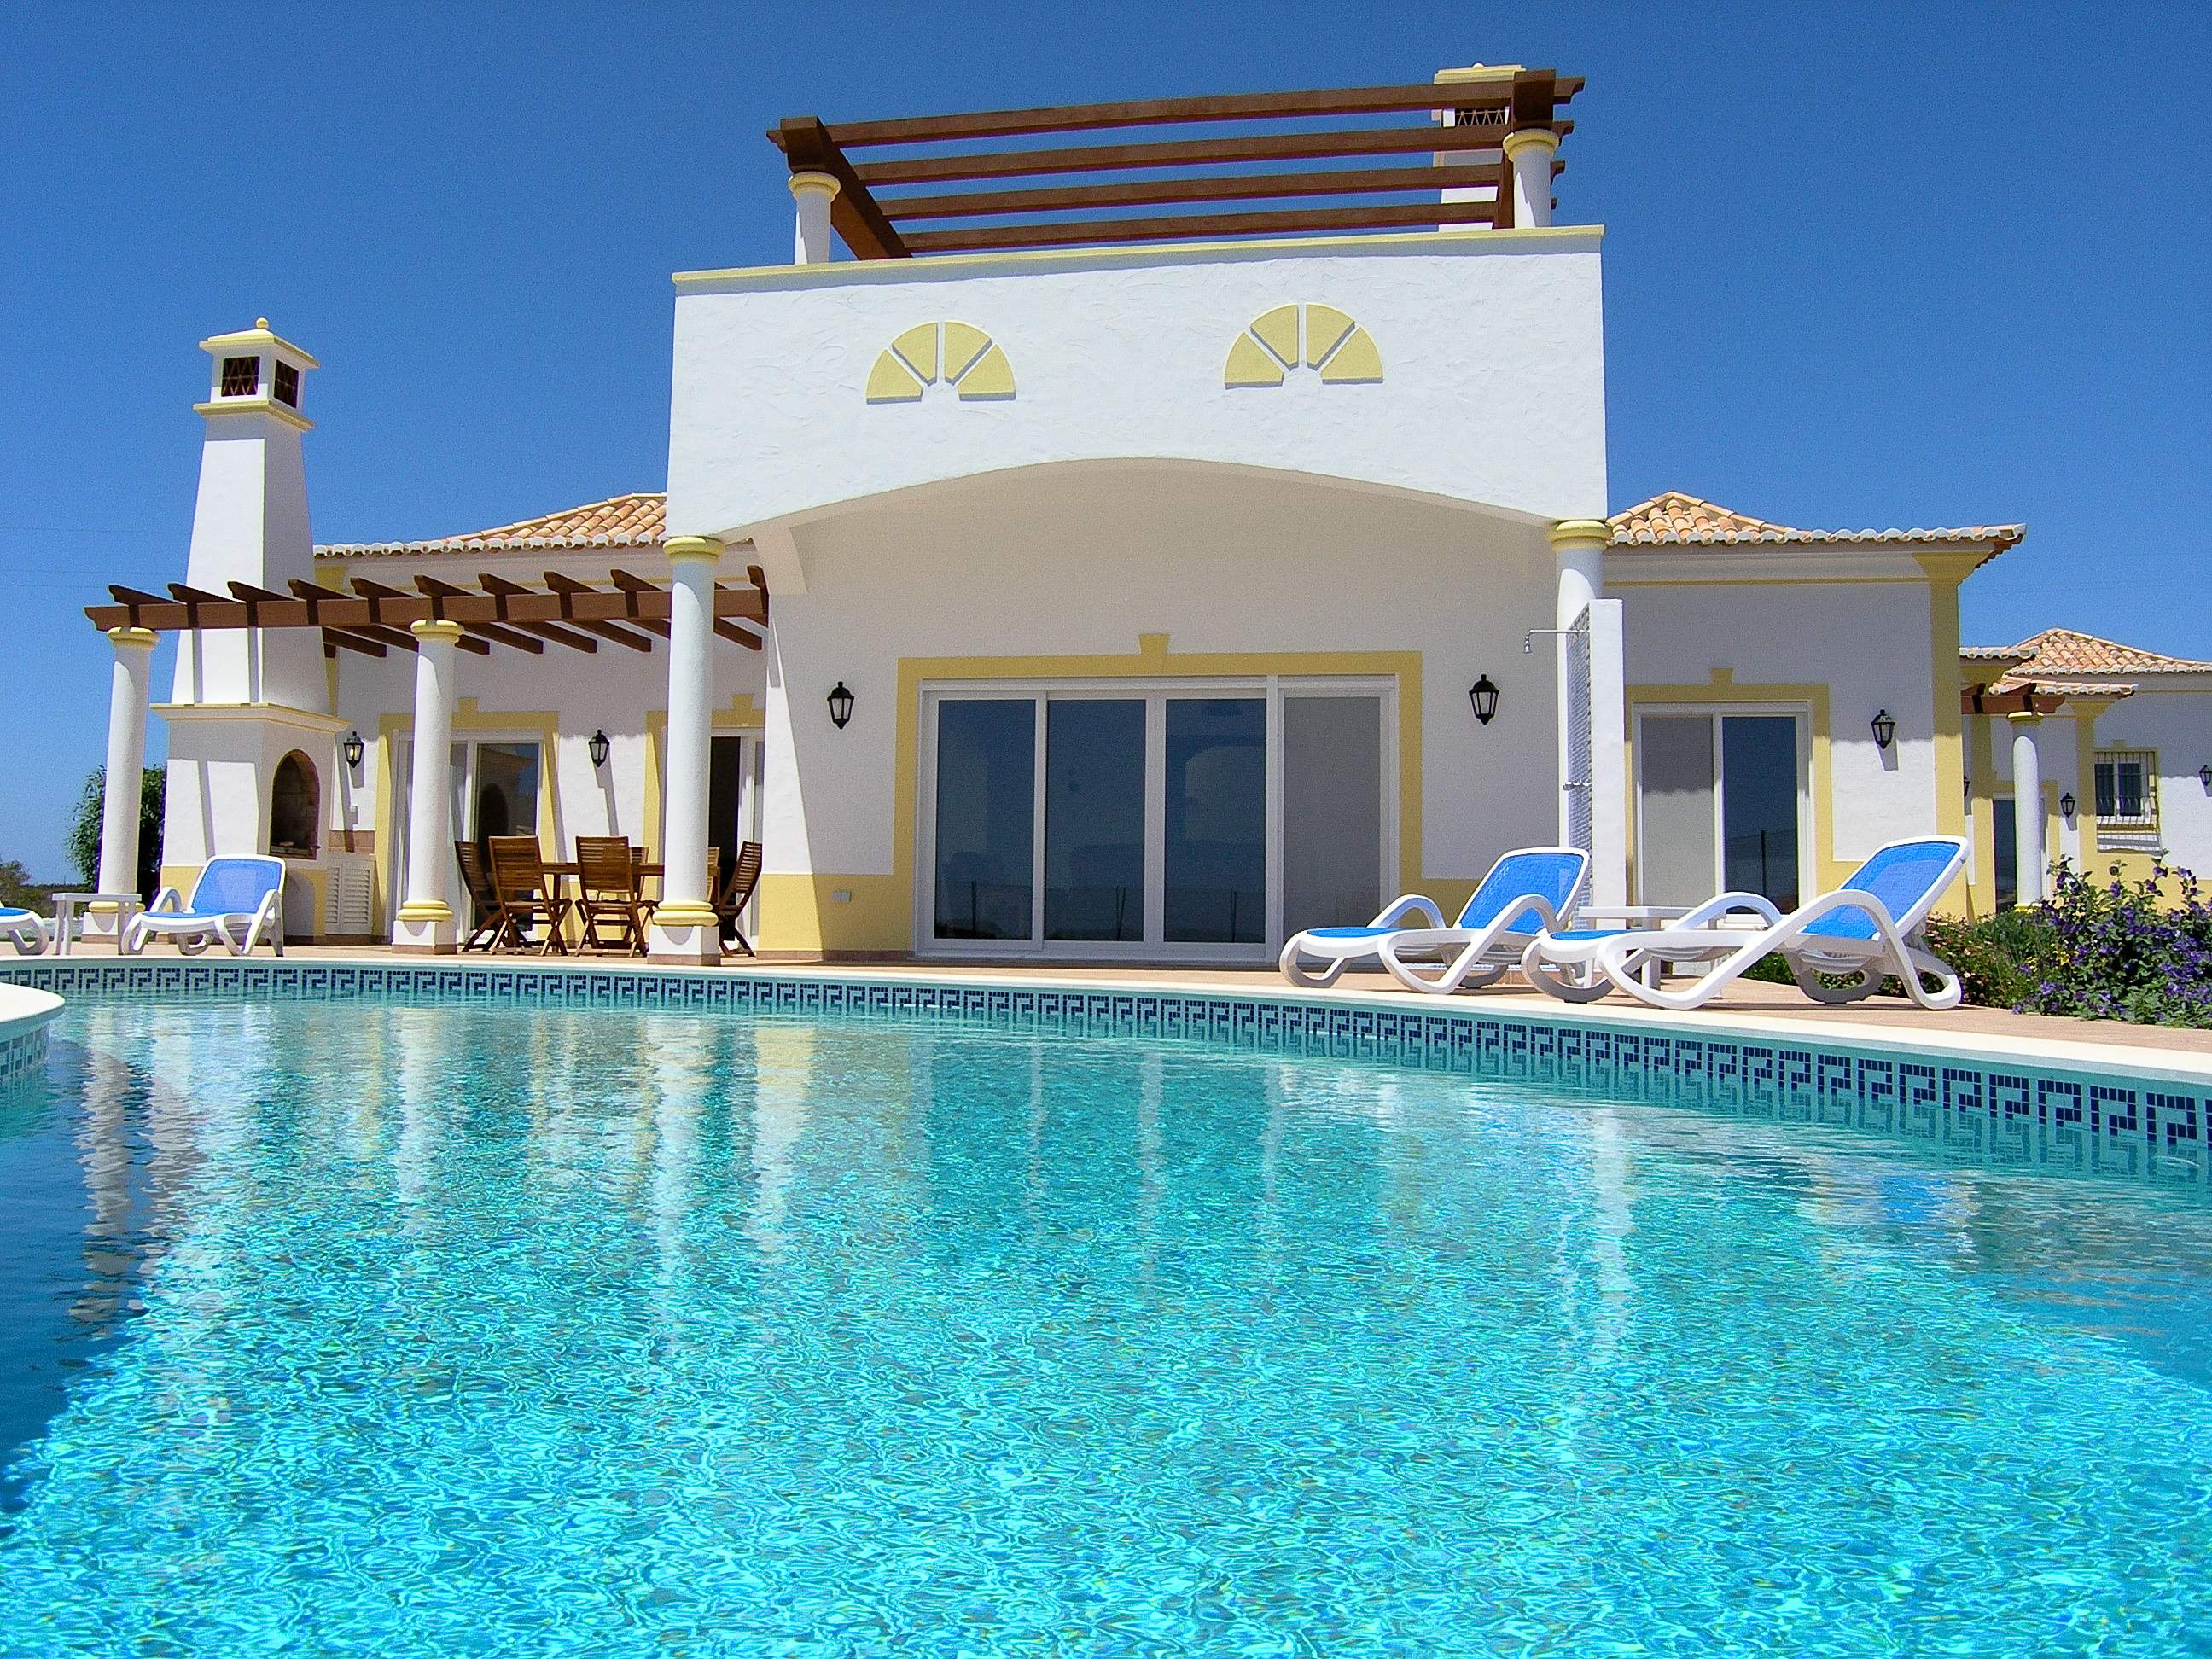 Martinhal Luxury Villa No.10, Three Bedroom Villa, 3 bedroom villa in Martinhal Sagres, Algarve Photo #1